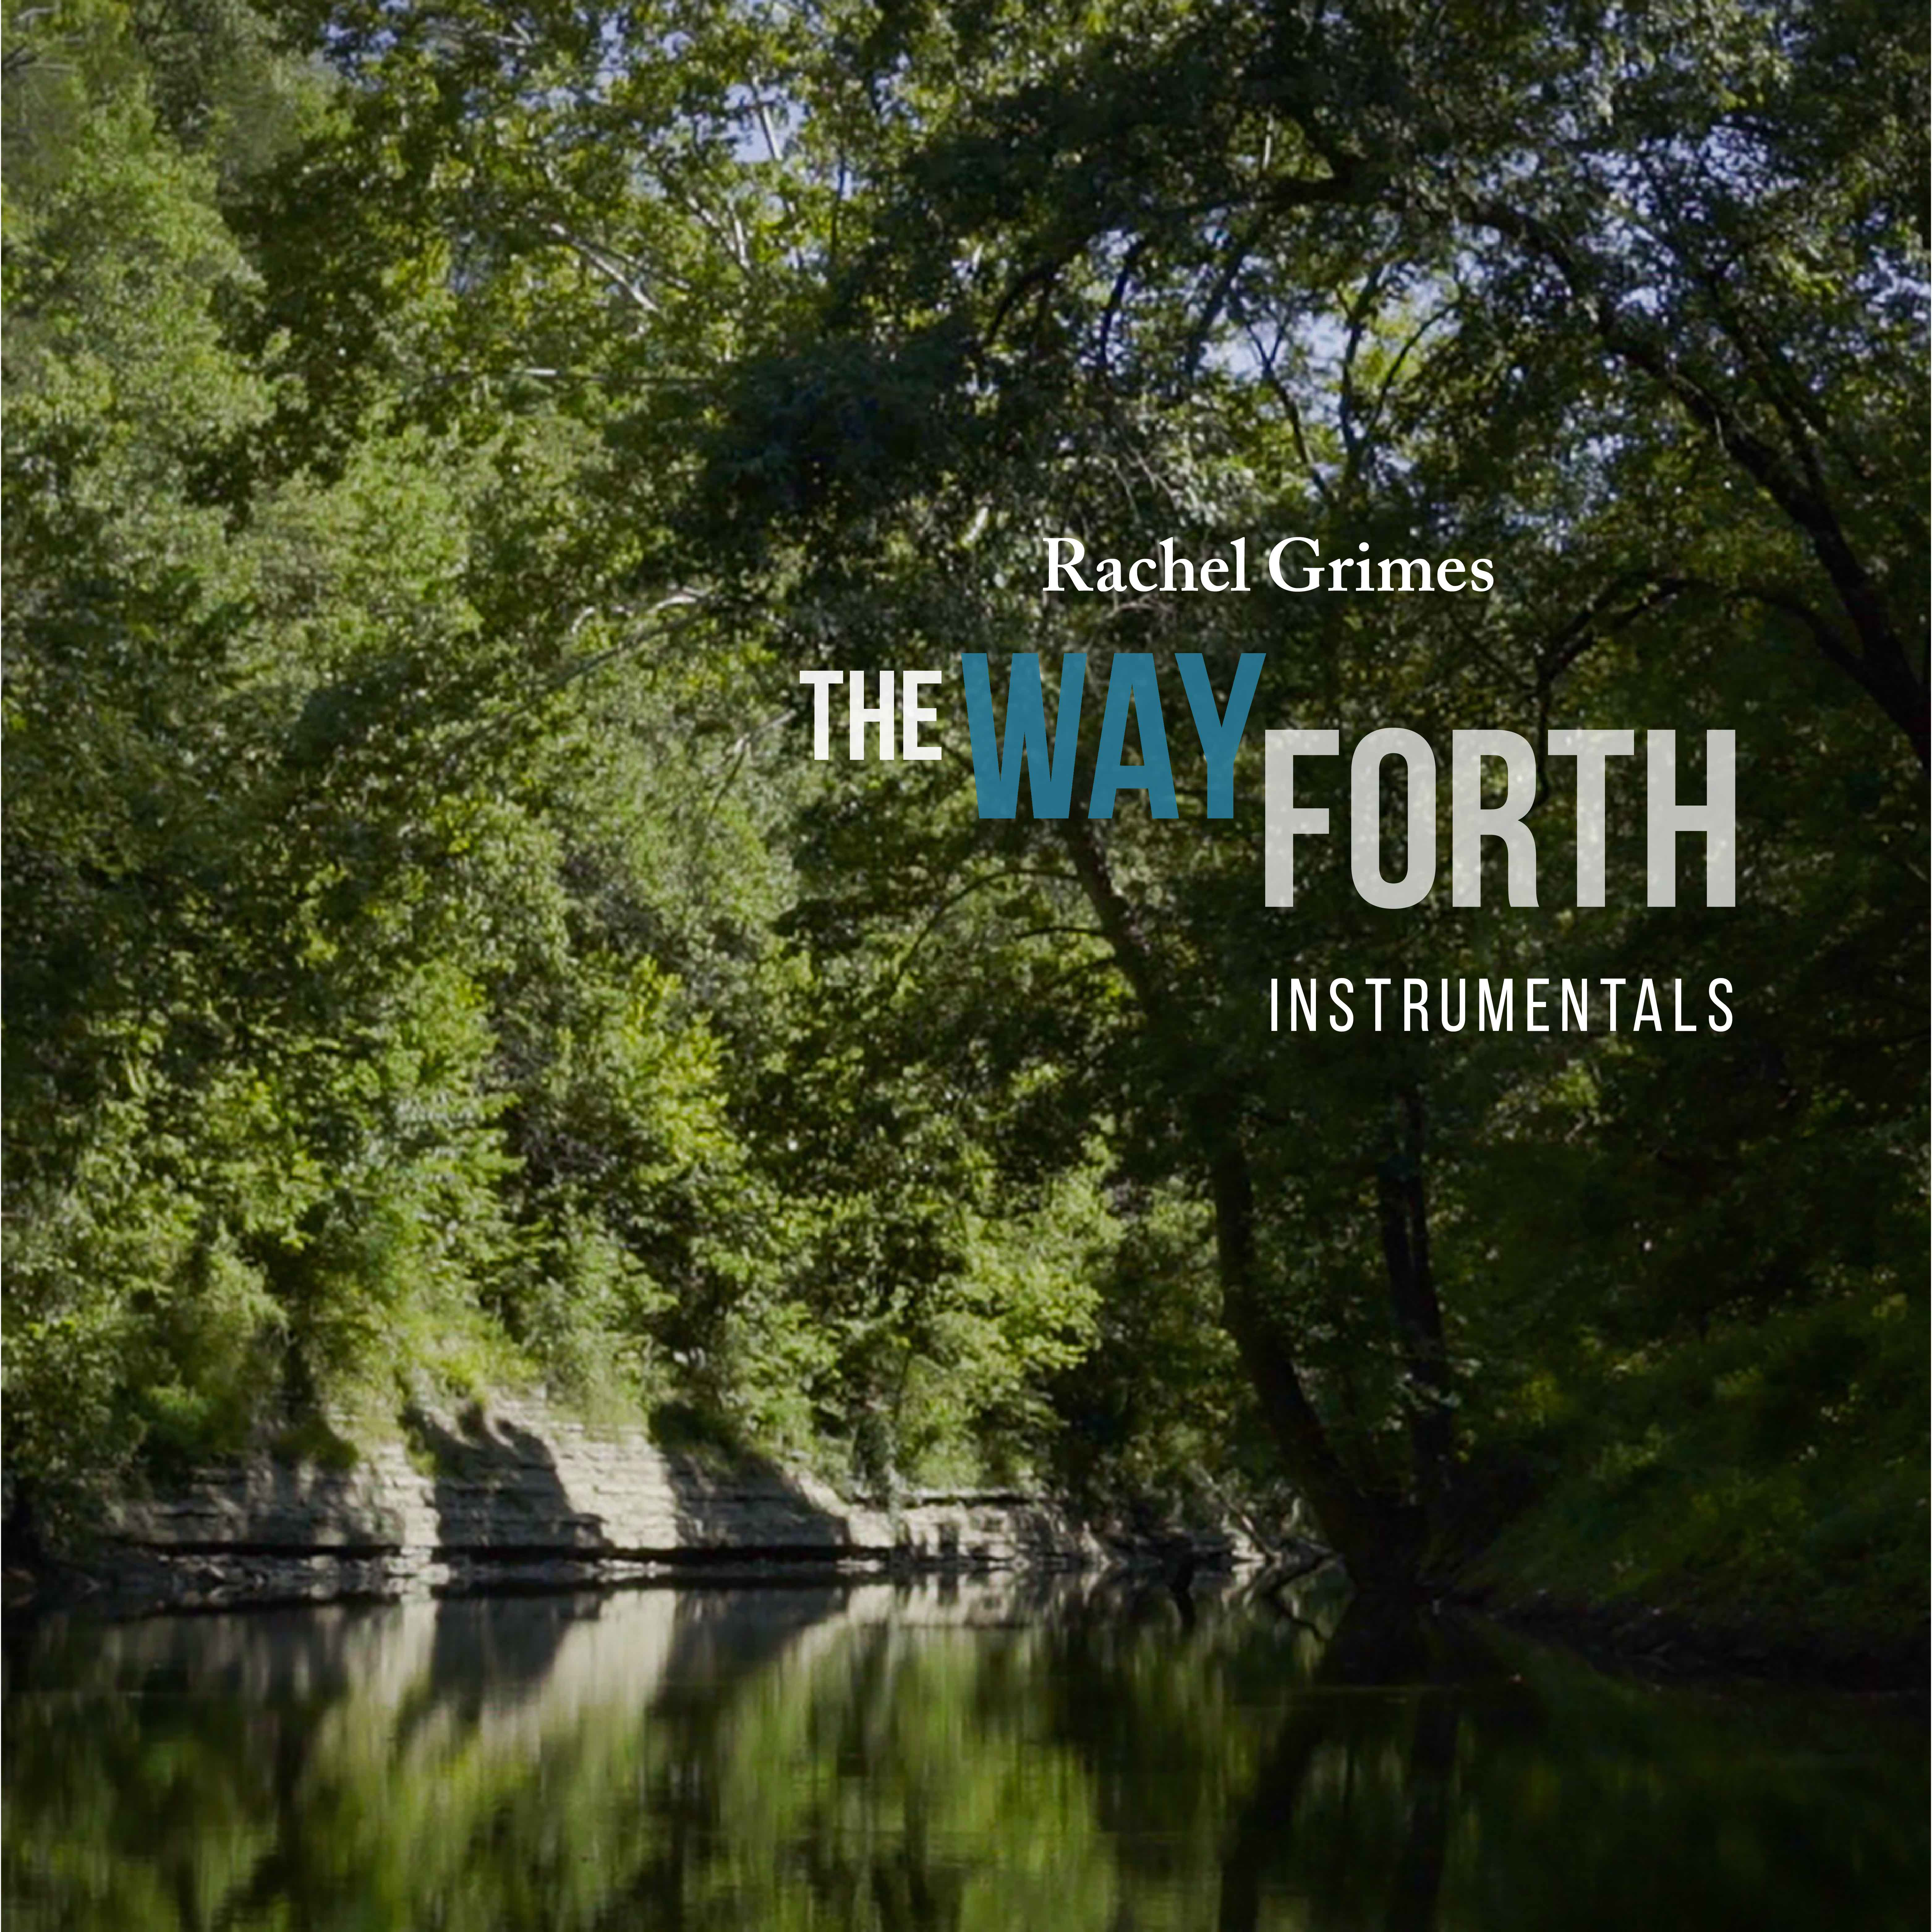 The Way Forth - Instrumentals 5 song EP on Temporary Residence October 2020